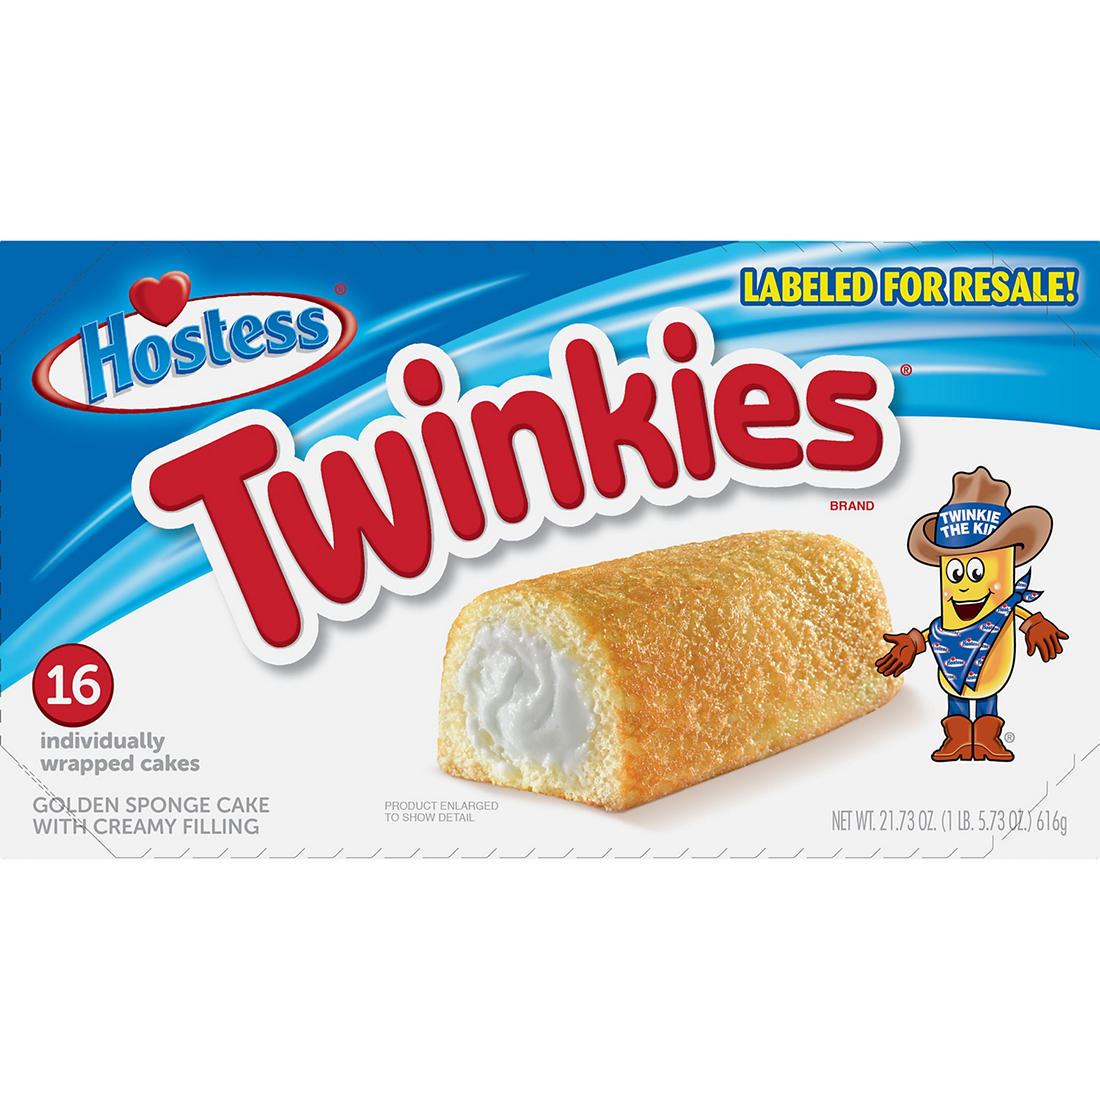 Hostess Twinkies Individually Wrapped Cakes, 16 ct